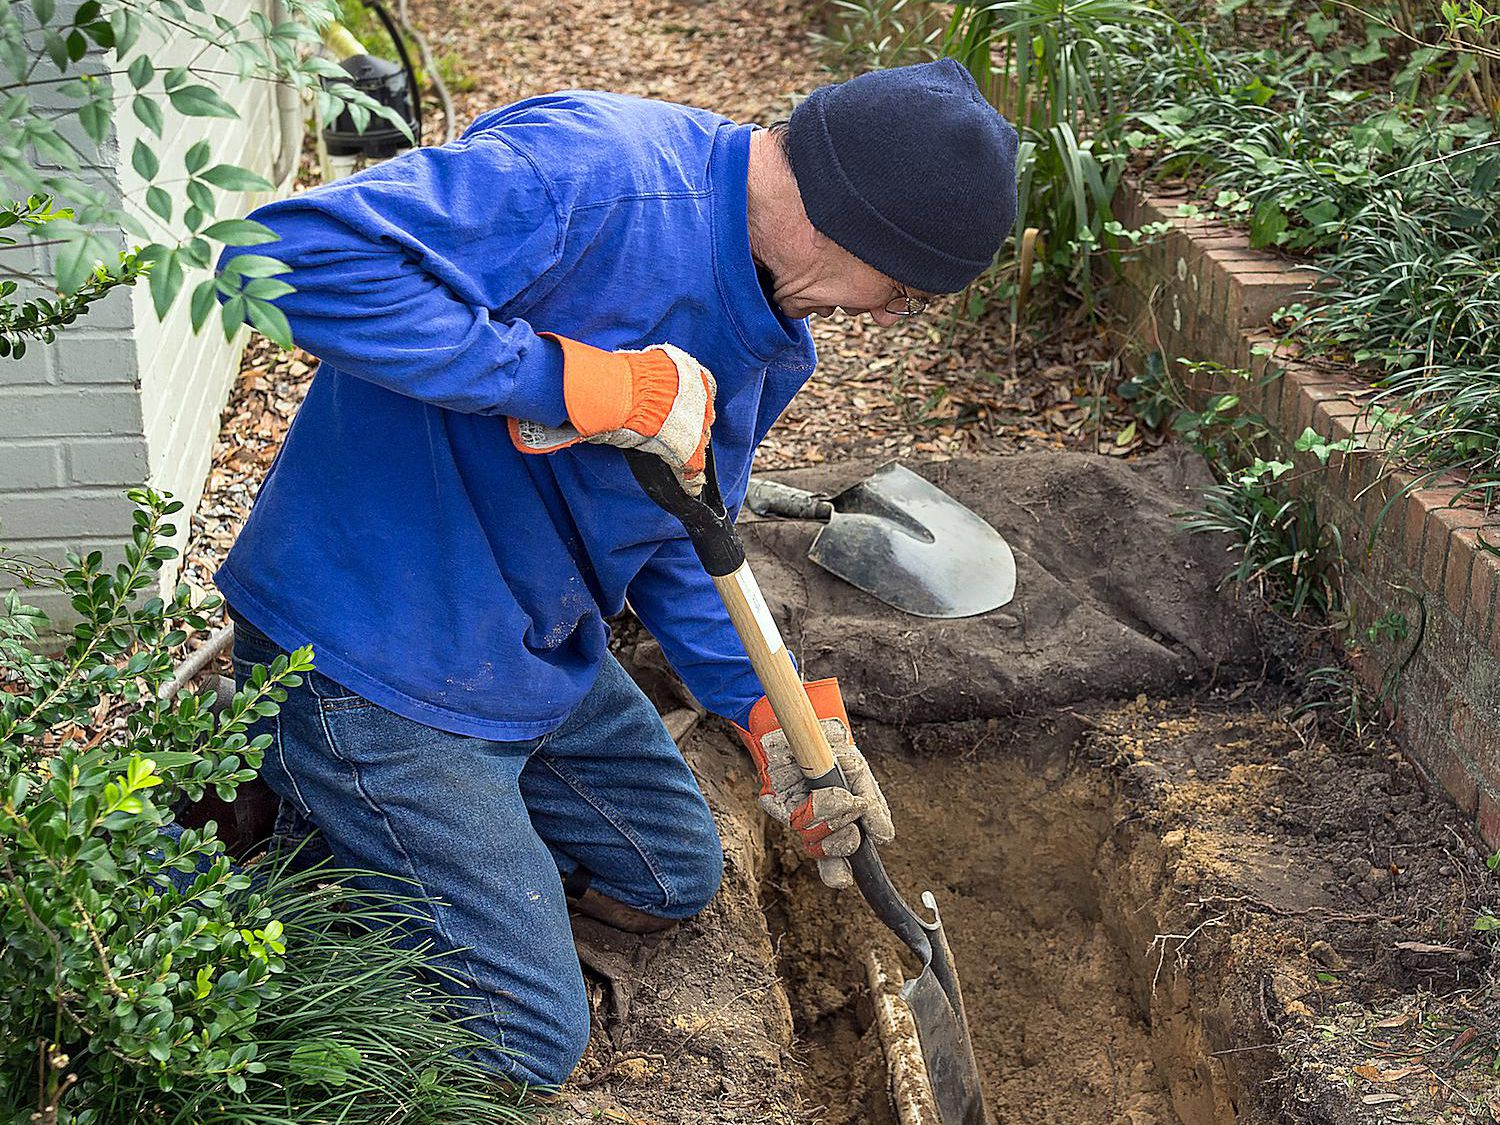 Sewer Inspections for Older Homes